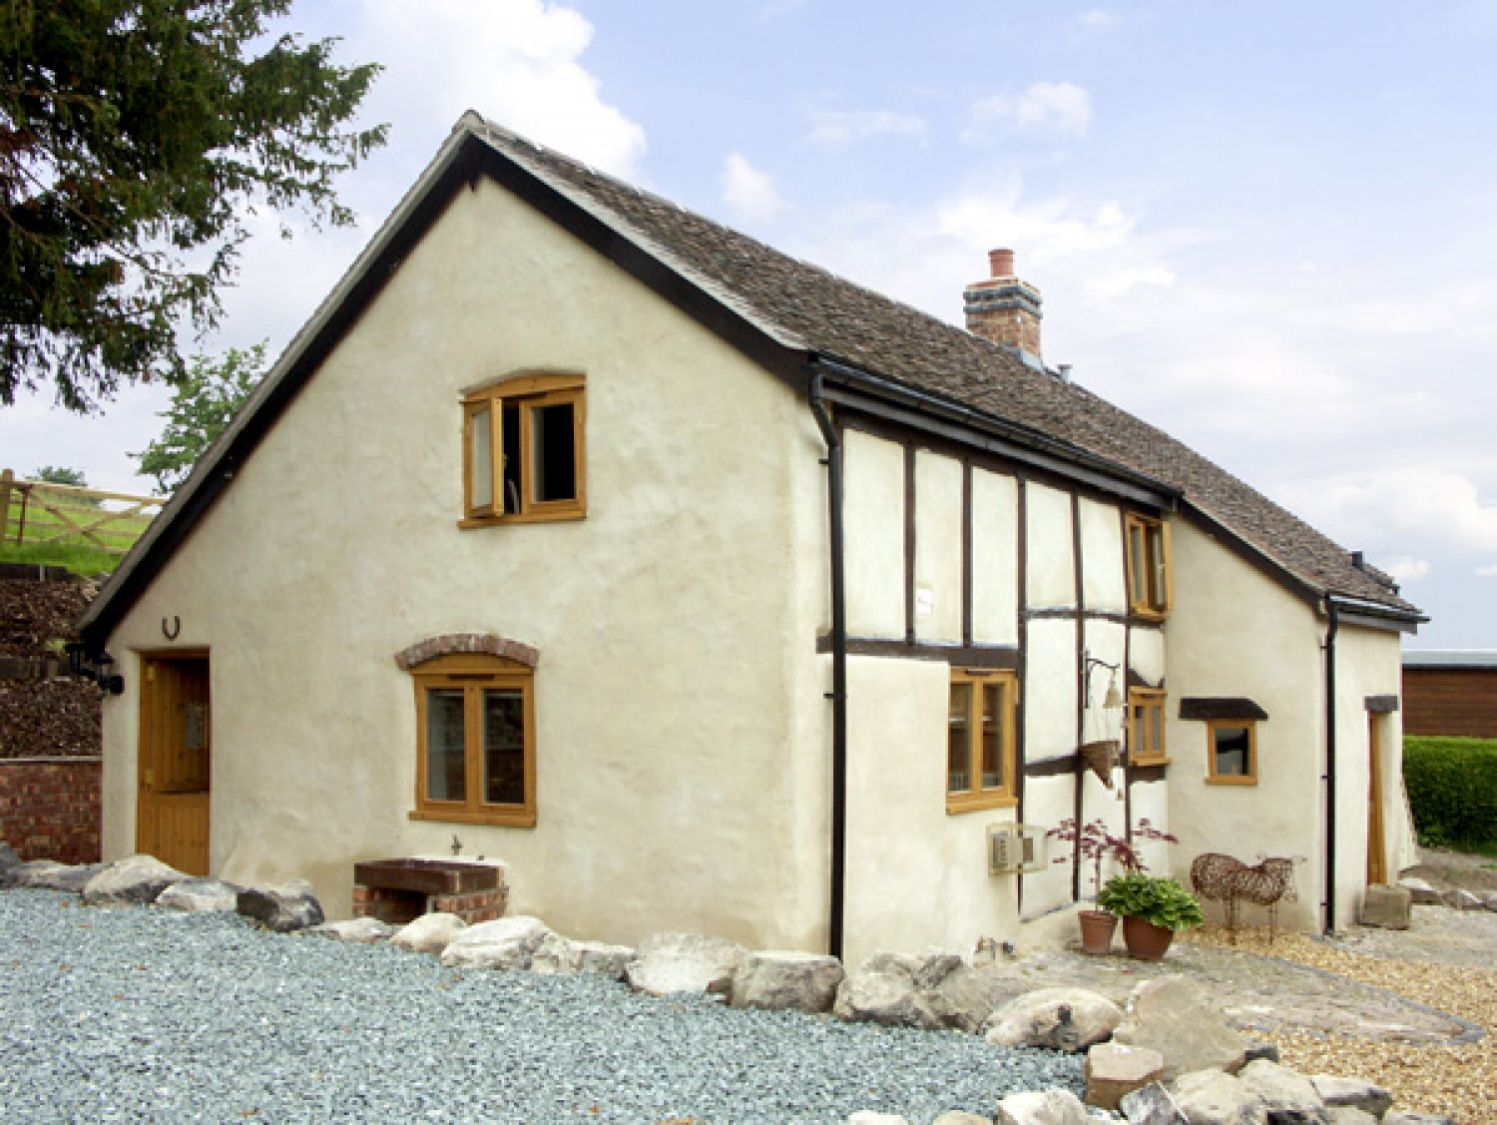 Holly Cottage, Lower Wood nr. Church Stretton | Sykes Cottages